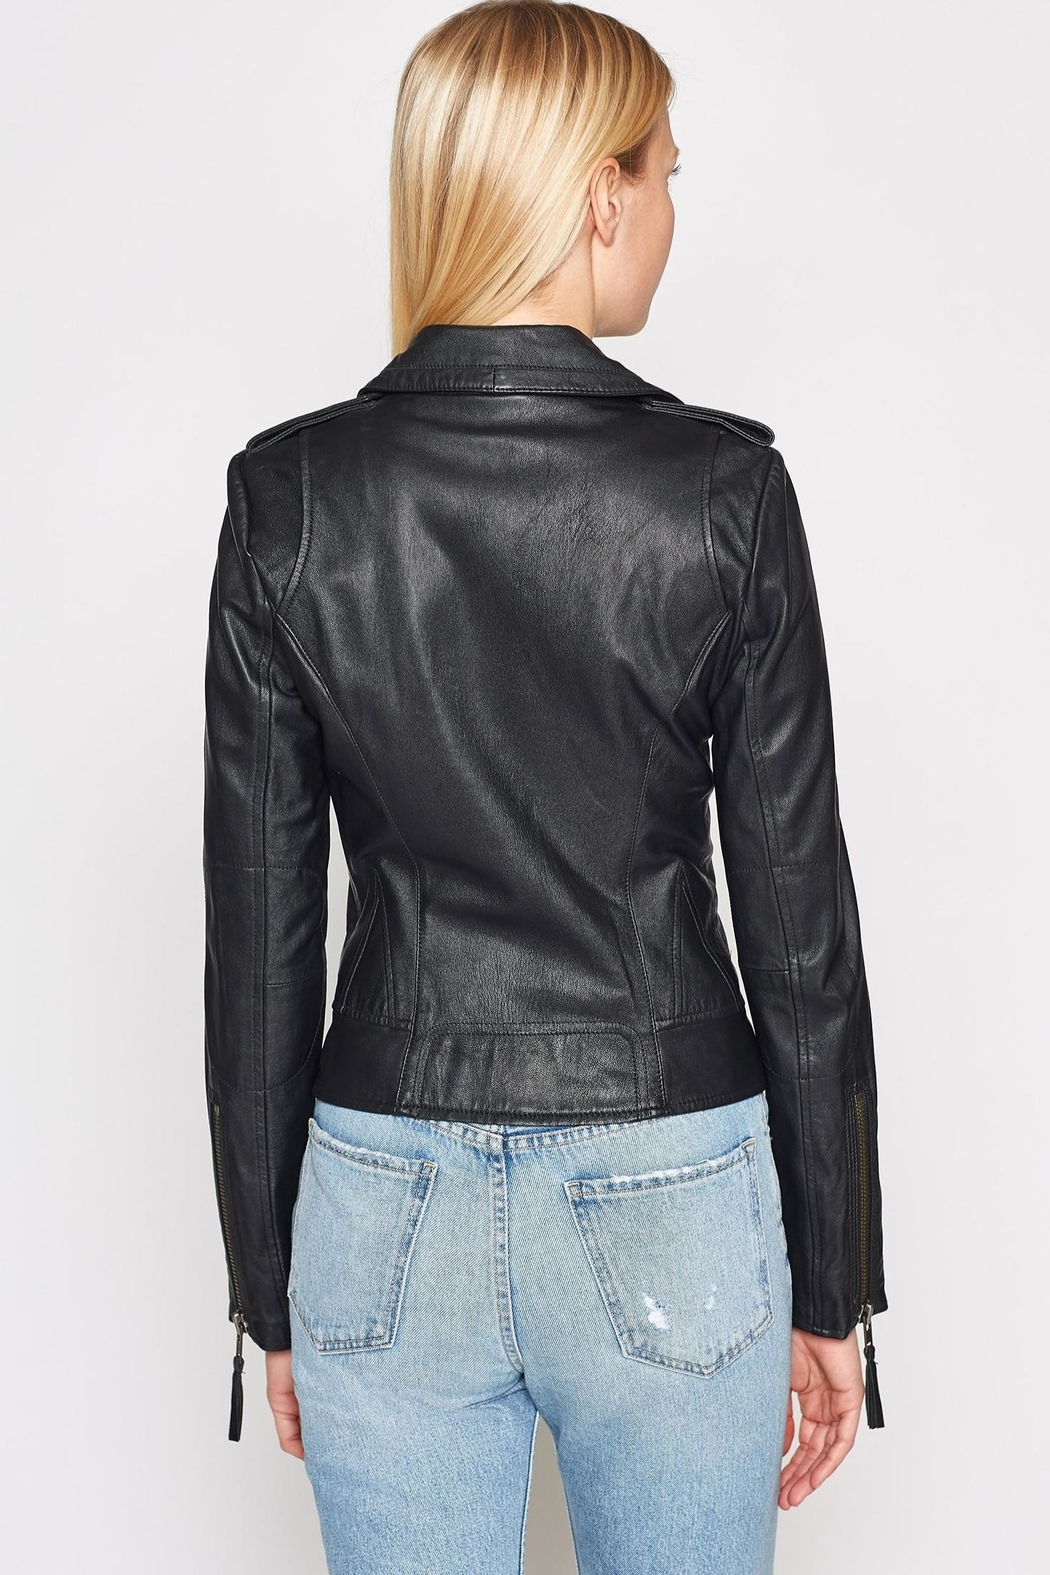 Joie Ailey Leather Jacket - Side Cropped Image